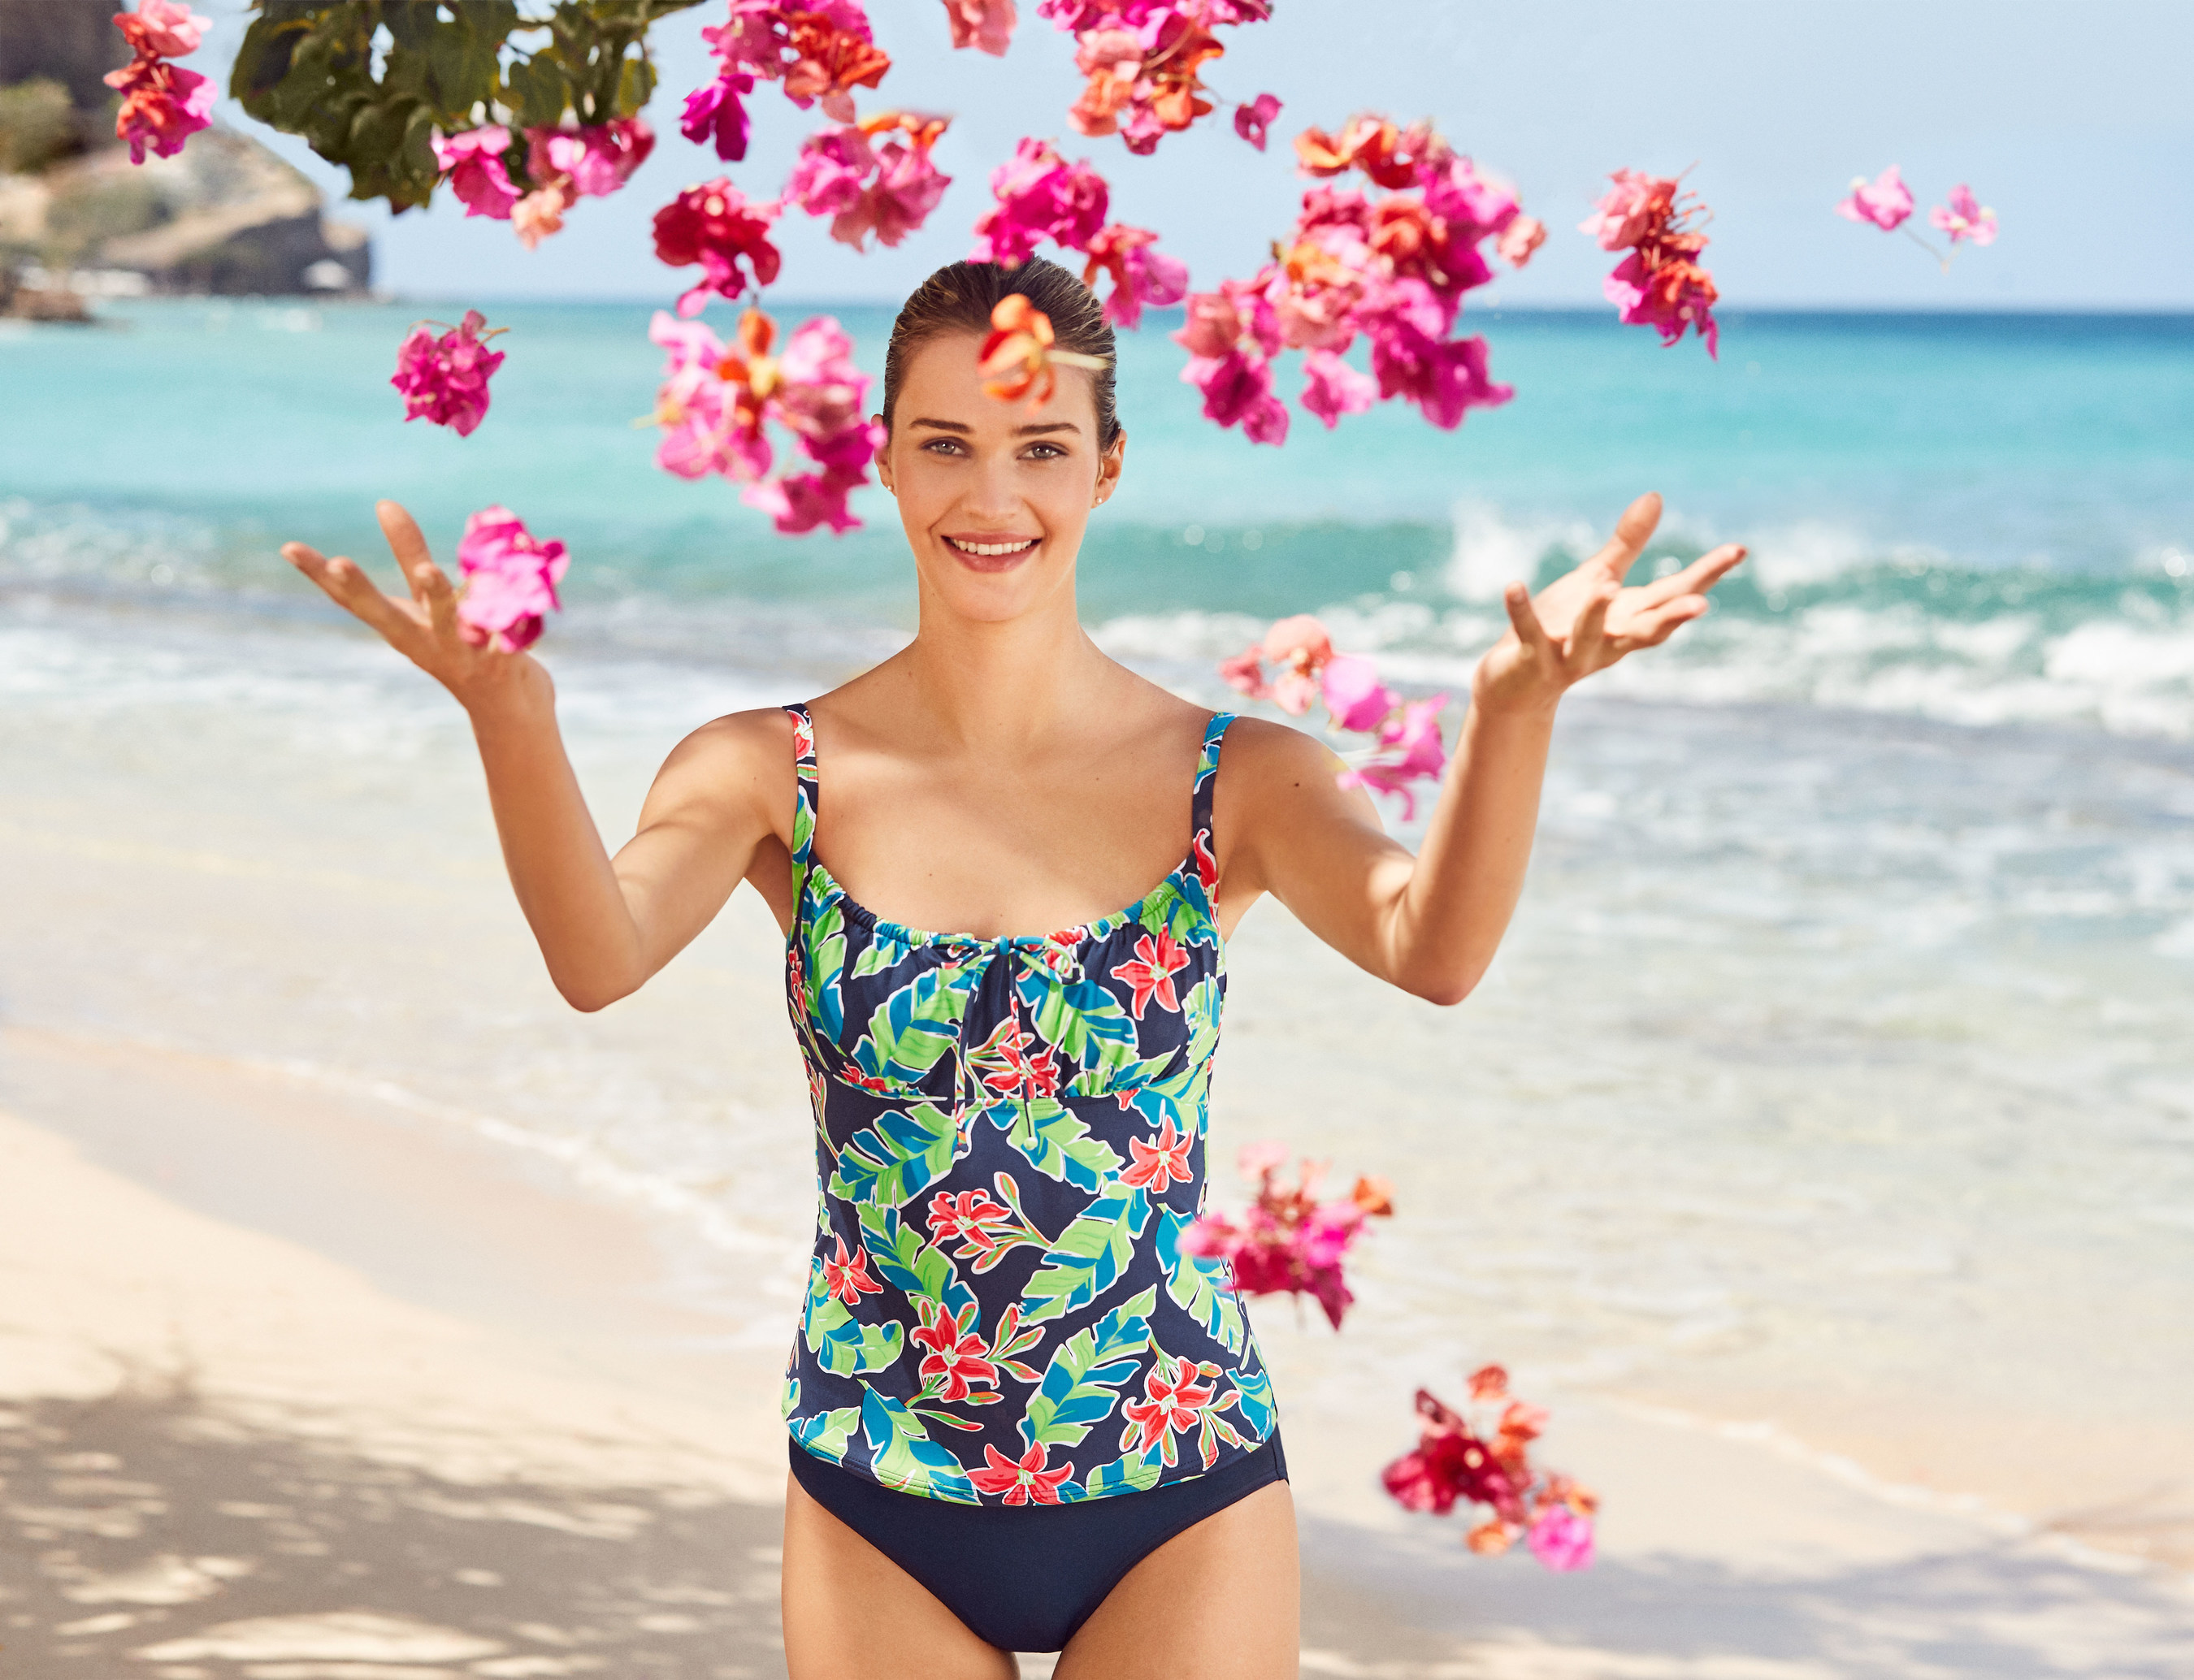 b14ec7cfaa Lands' End Announces 50% Off All Swimwear in Honor of National Swimsuit Day